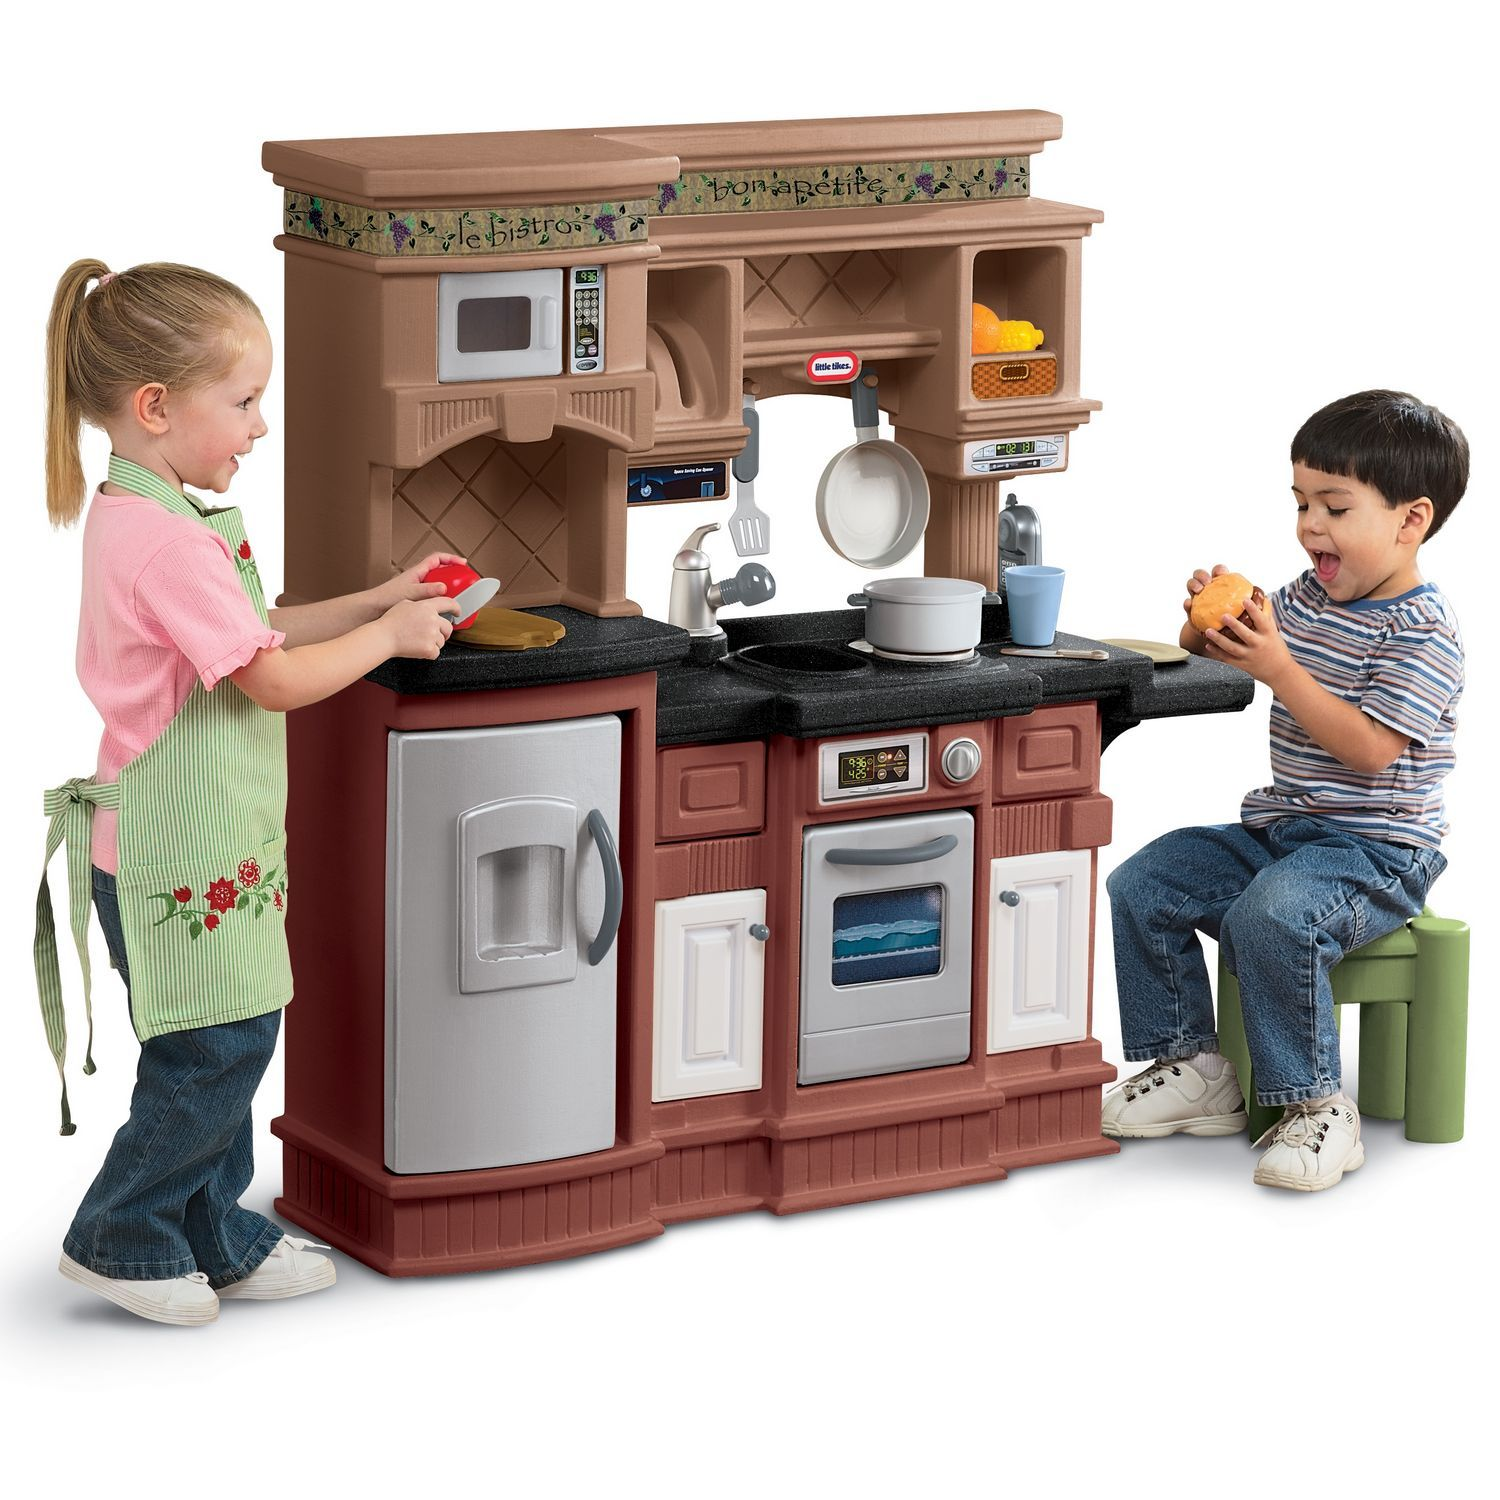 Little Tikes Gourmet Prep 'n Serve Kitchen with 18-piece Accessory Set by MGA Entertainment